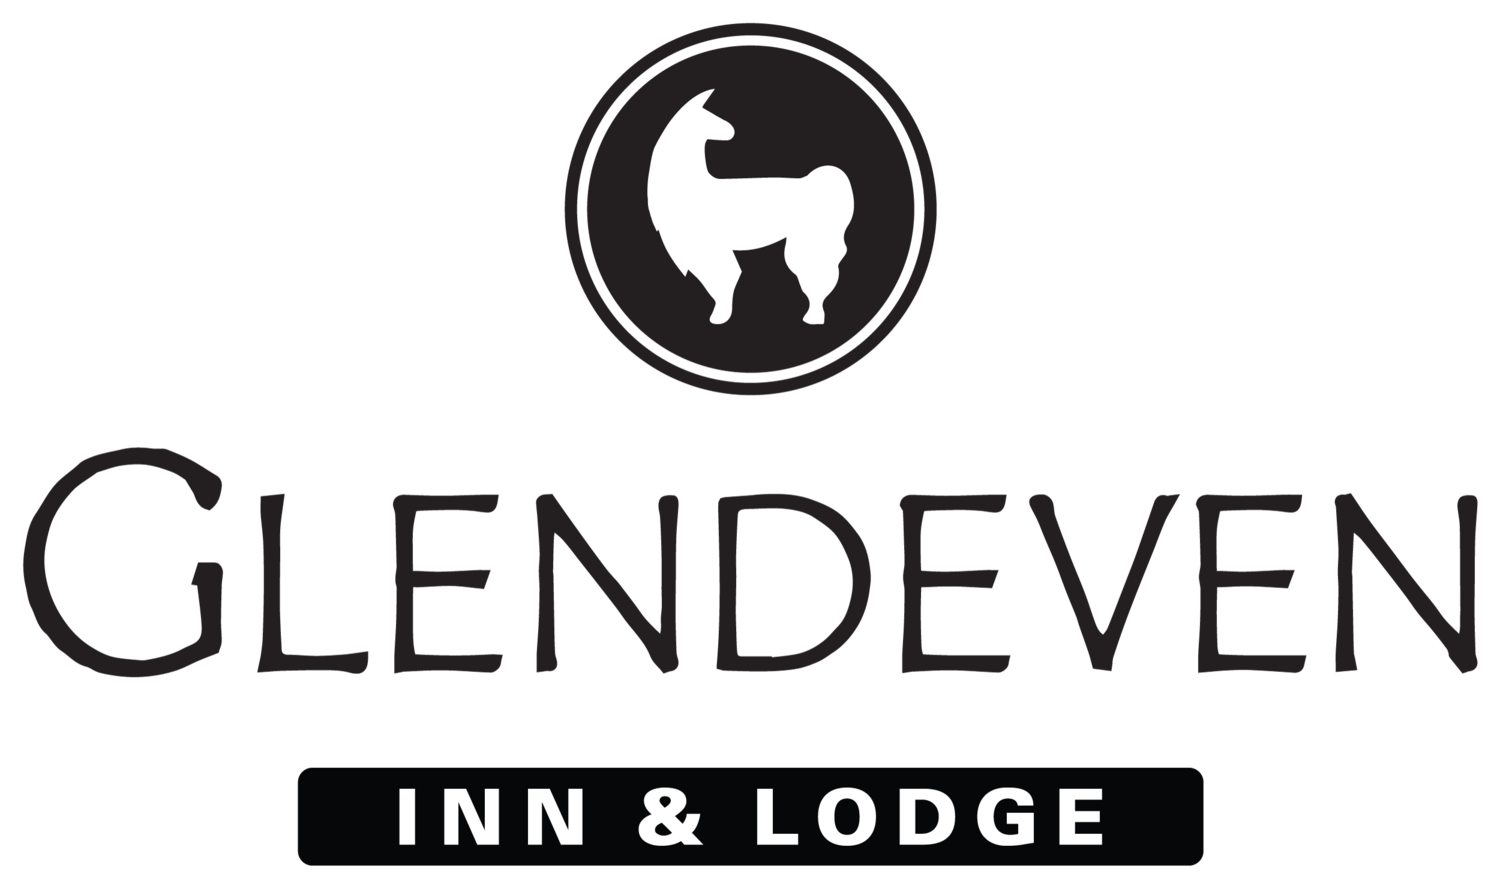 The Inn & Lodge at Glendeven